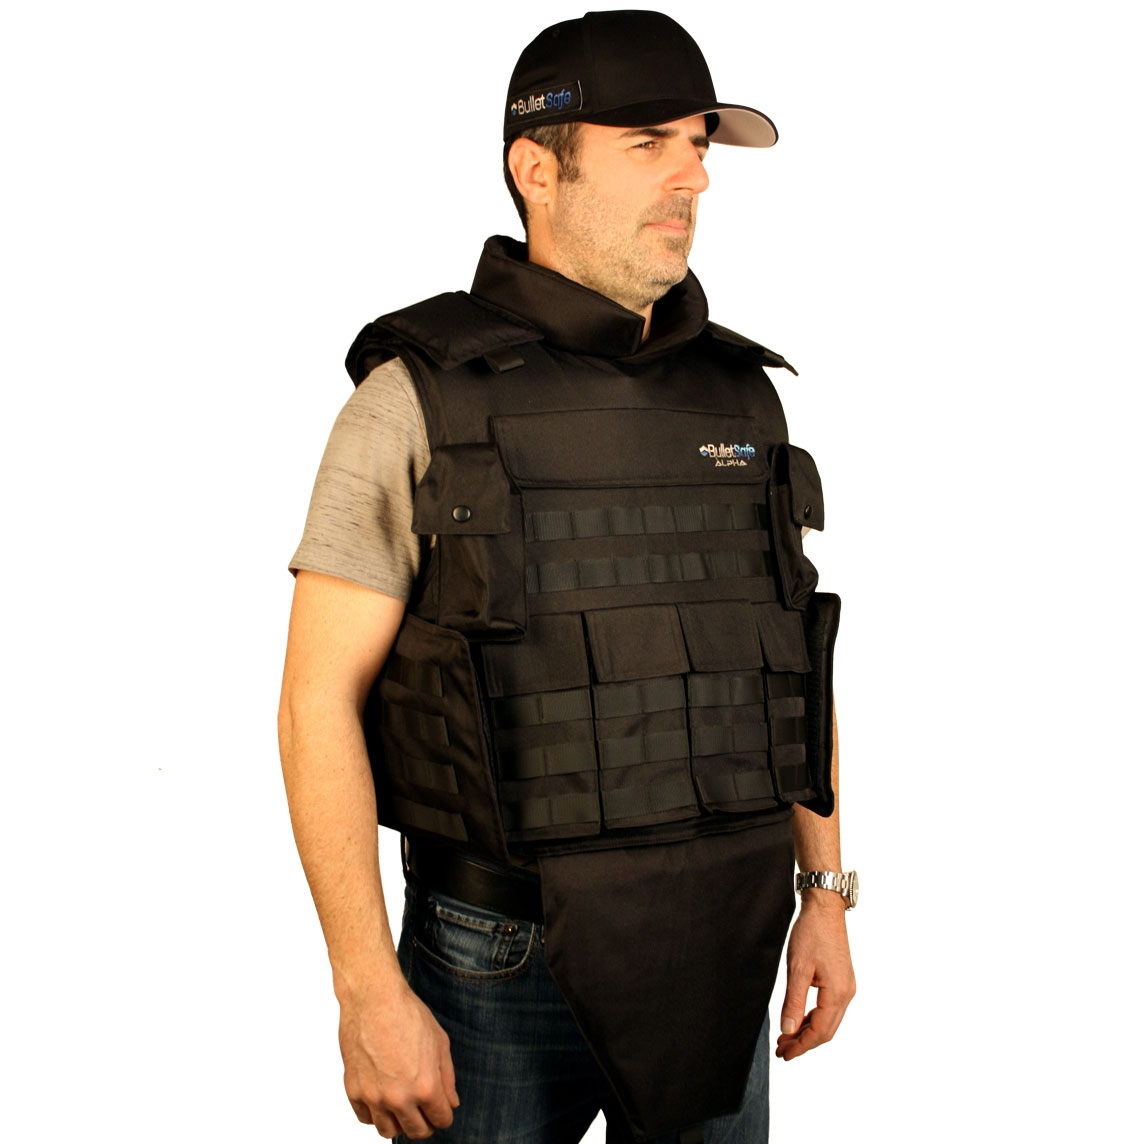 Tactical Body Armor Vests